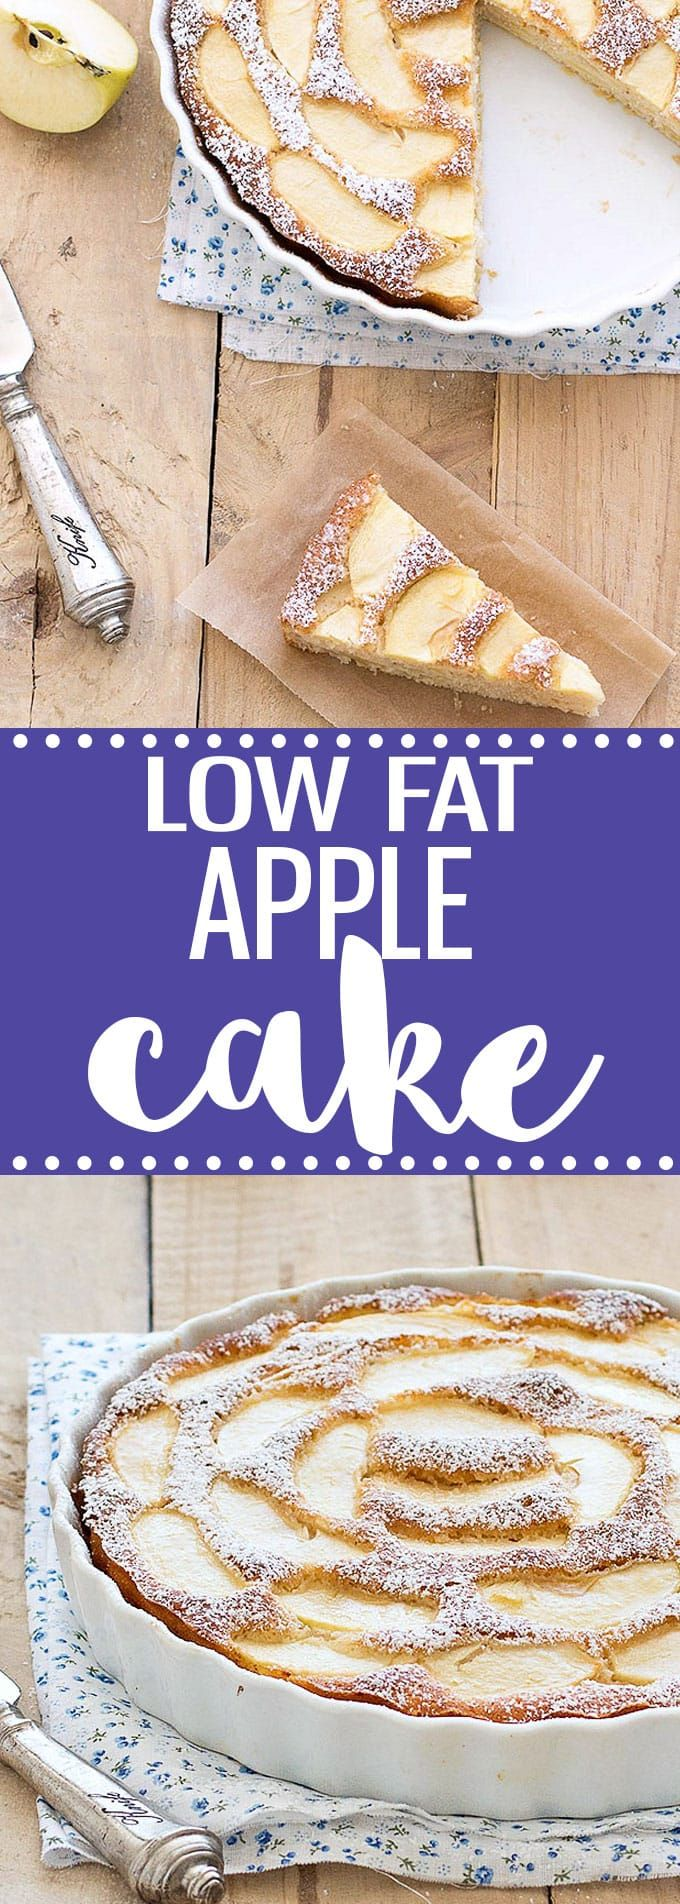 This easy low-fat apple cake is super moist, flavorful and delicious! Only 116 calories per slice. via @easyasapplepie